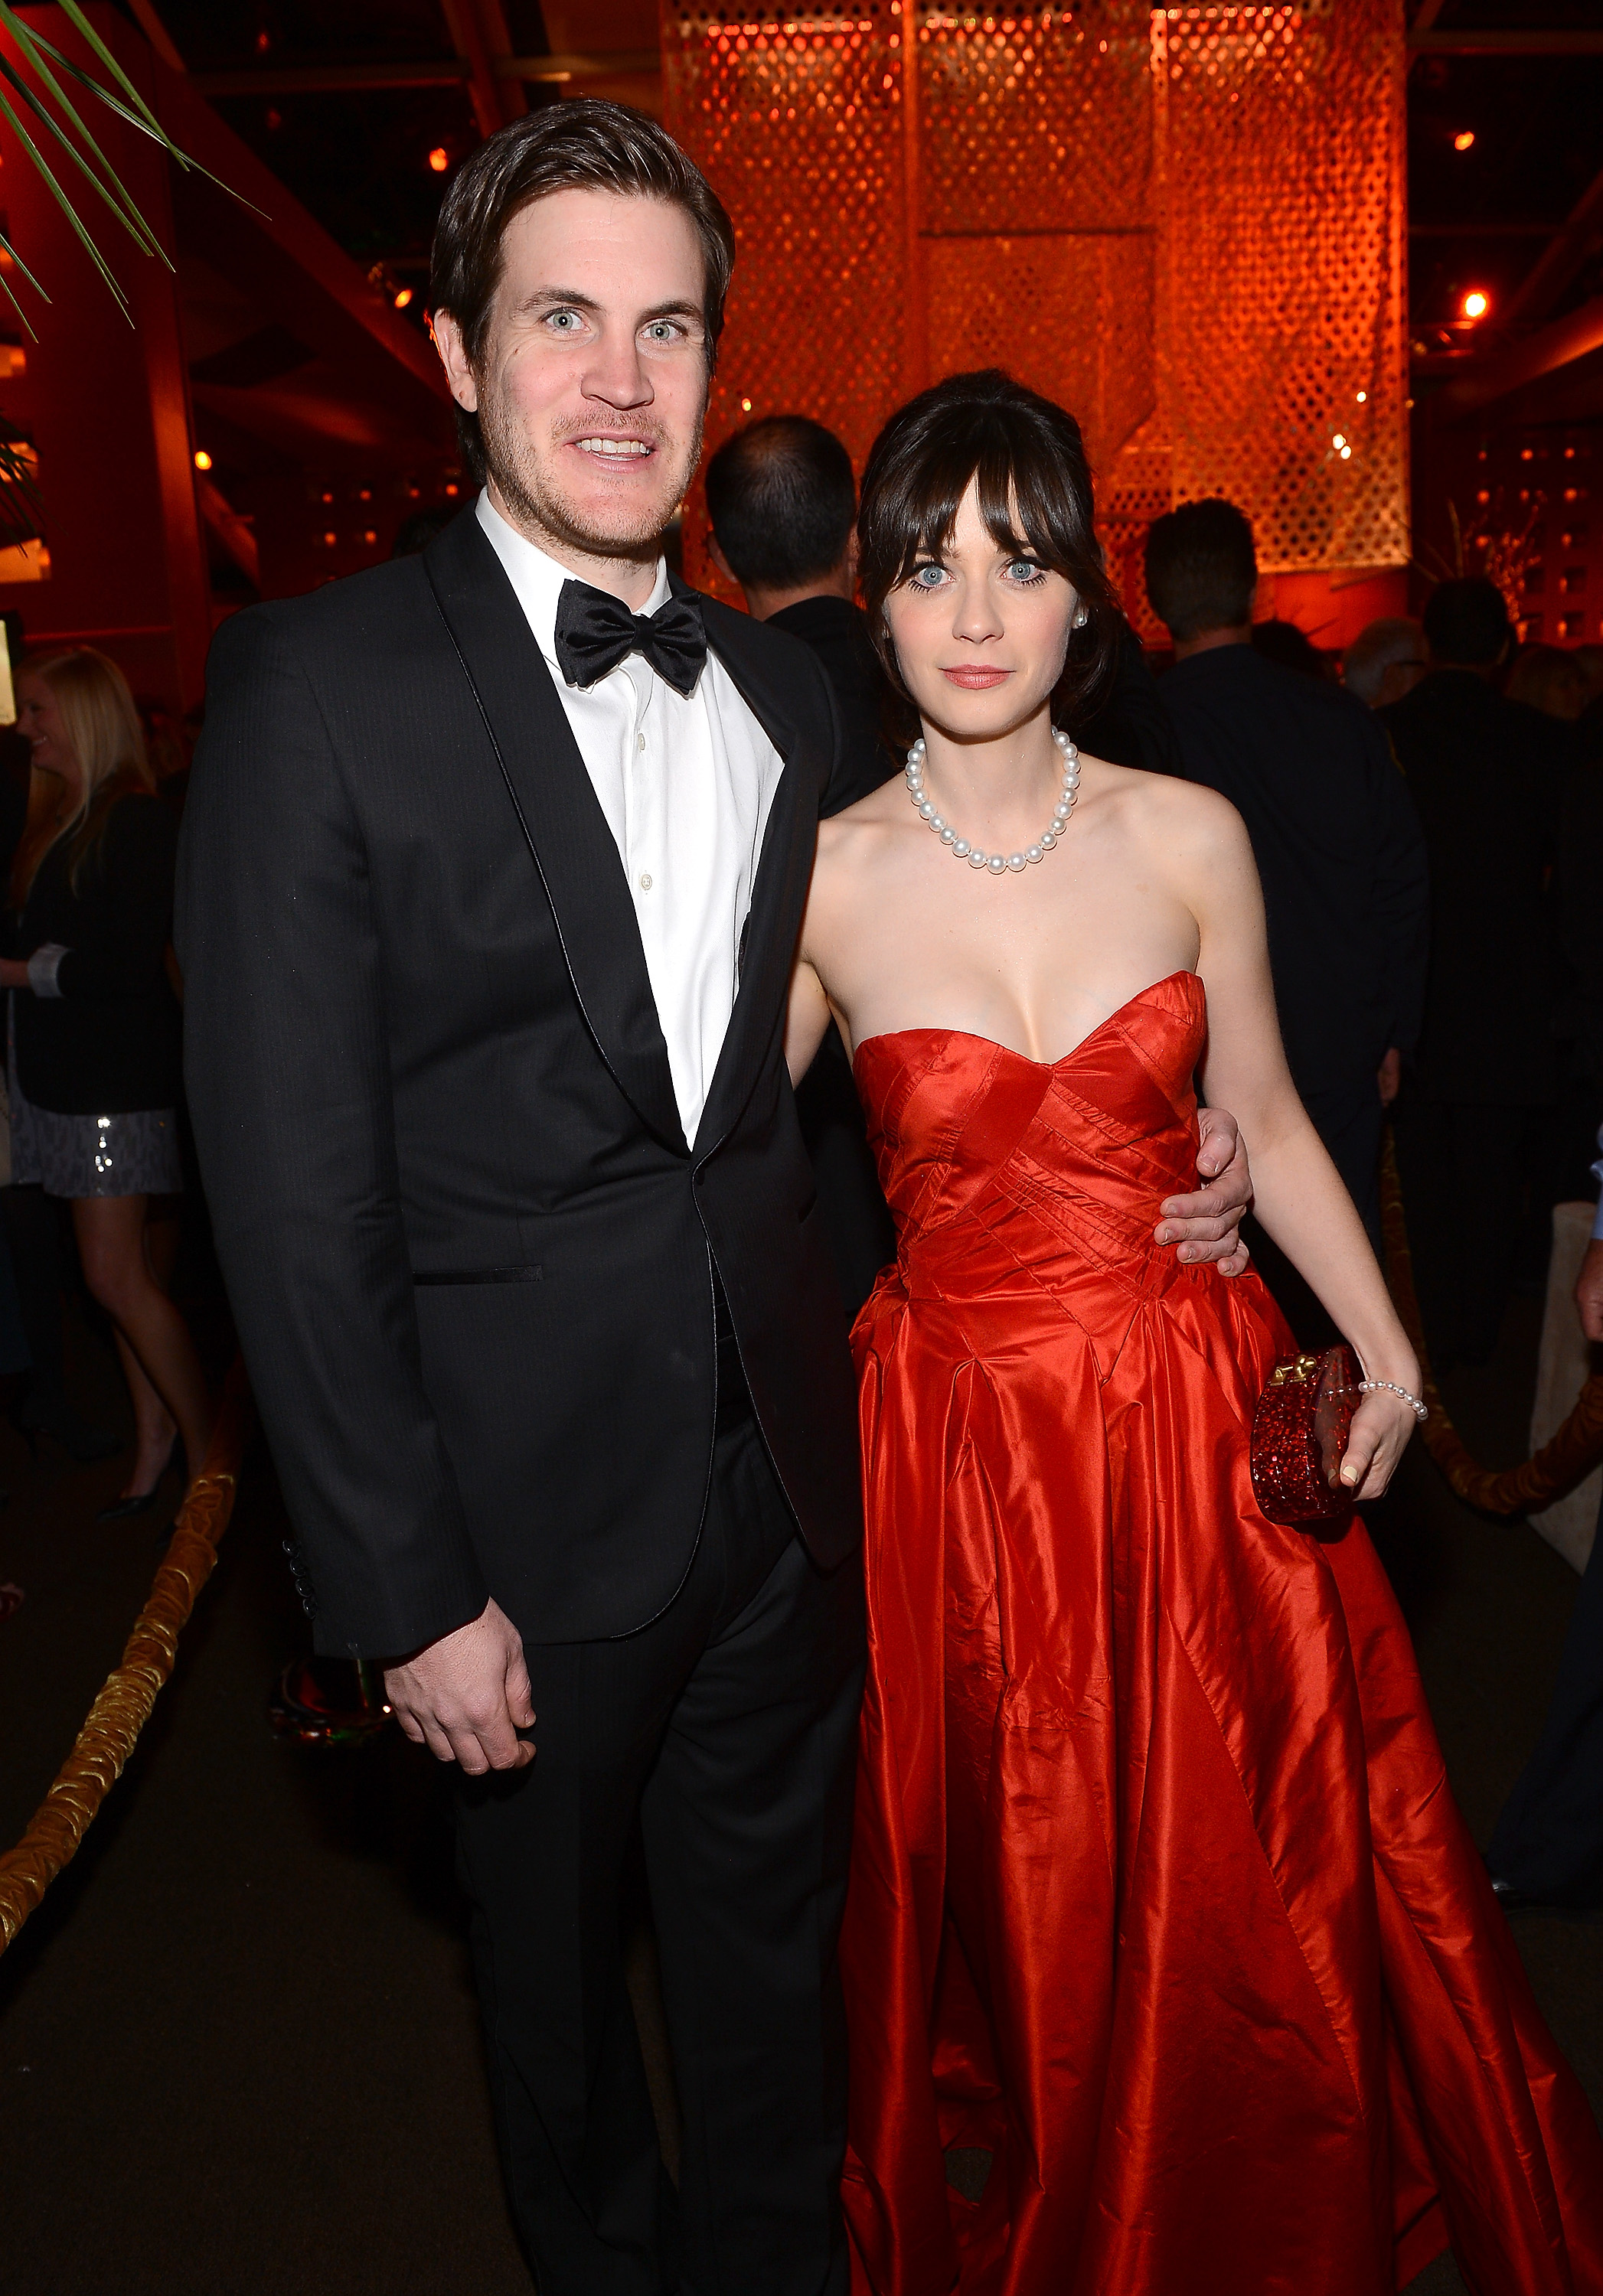 Couple Jamie Linden and Zooey Deschanel were at the Fox celebration.